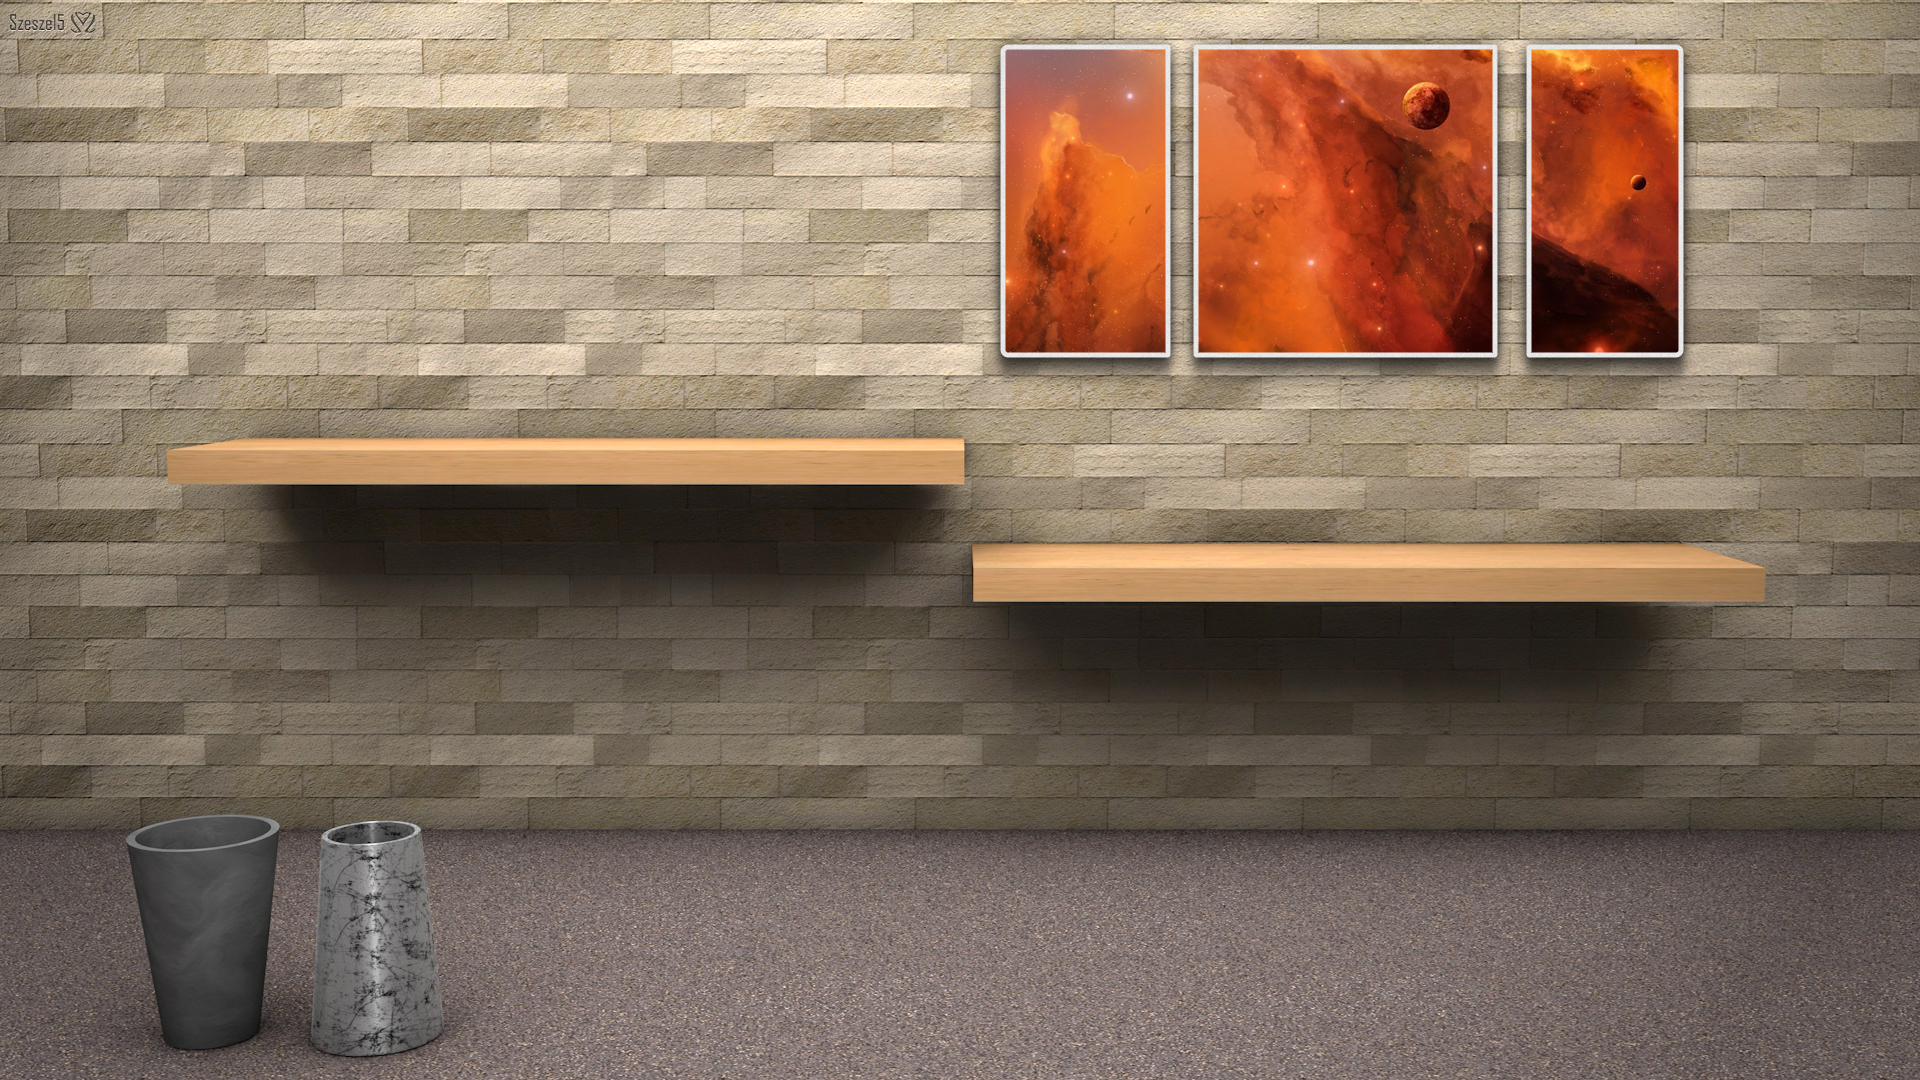 3d room wallpaper - wallpapersafari.